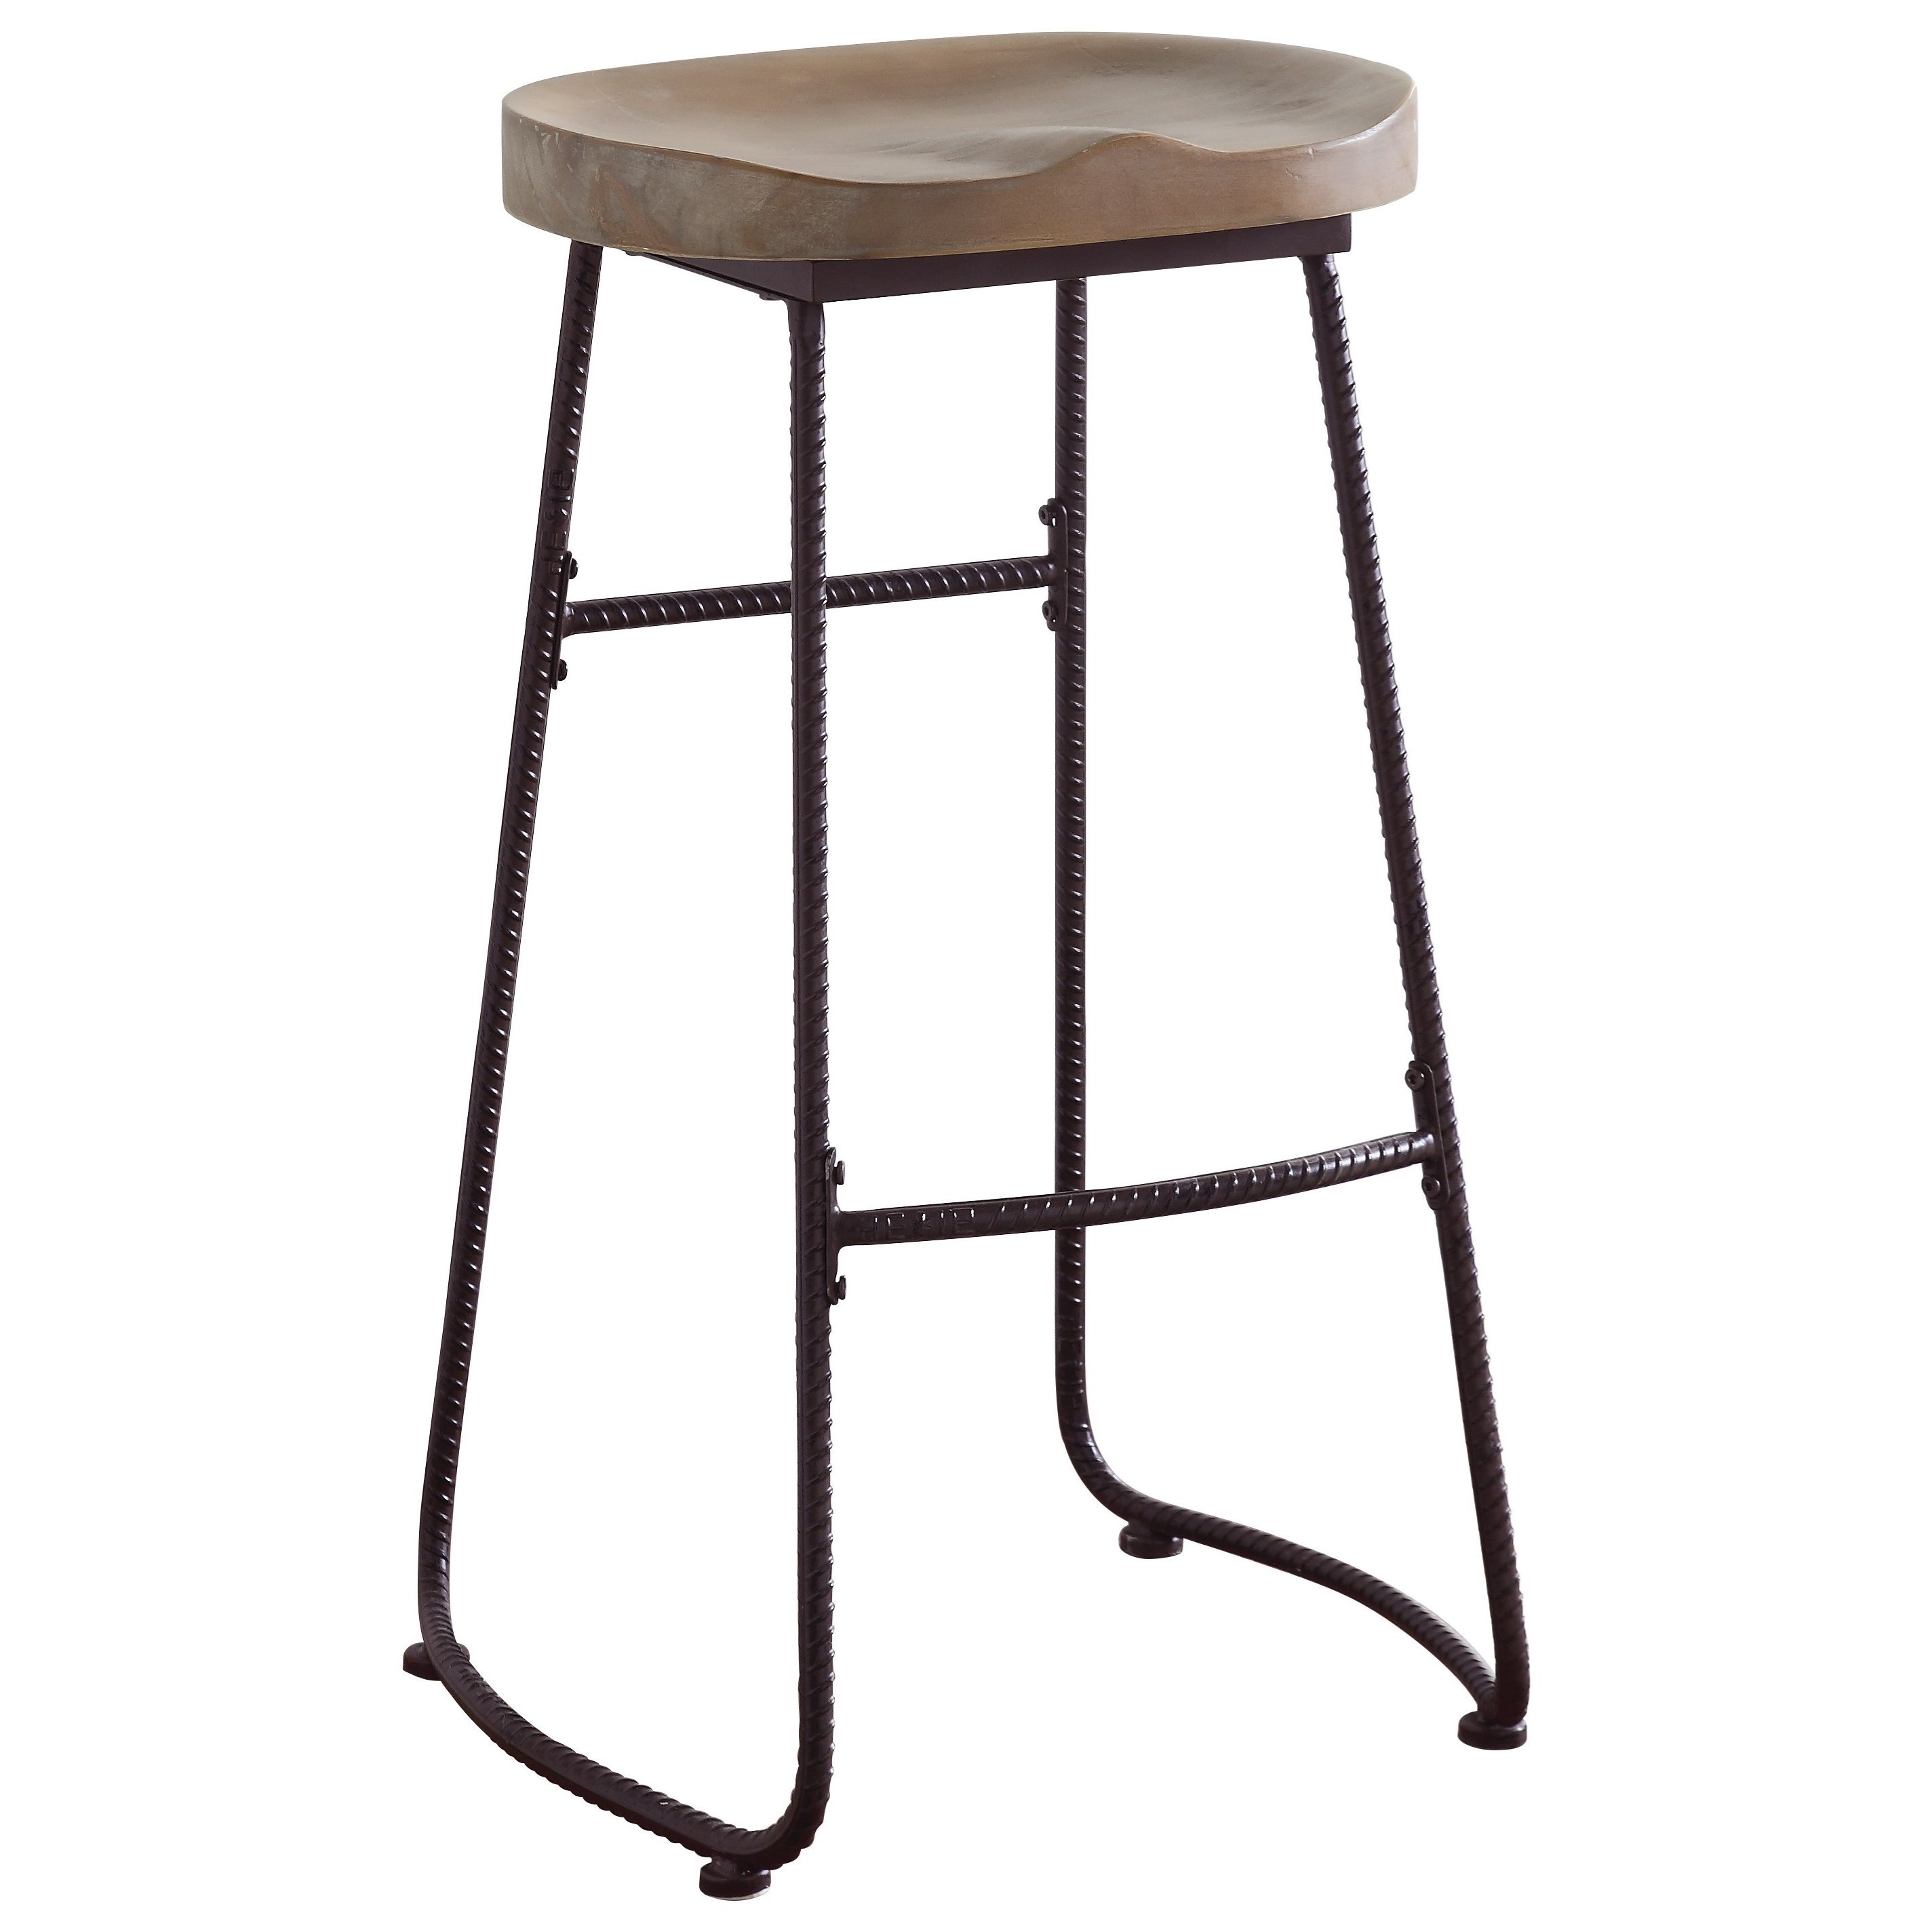 Bar Stool Chairs Dining Chairs And Bar Stools Rustic Bar Stool With Saddle Seat By Coaster At Dunk Bright Furniture